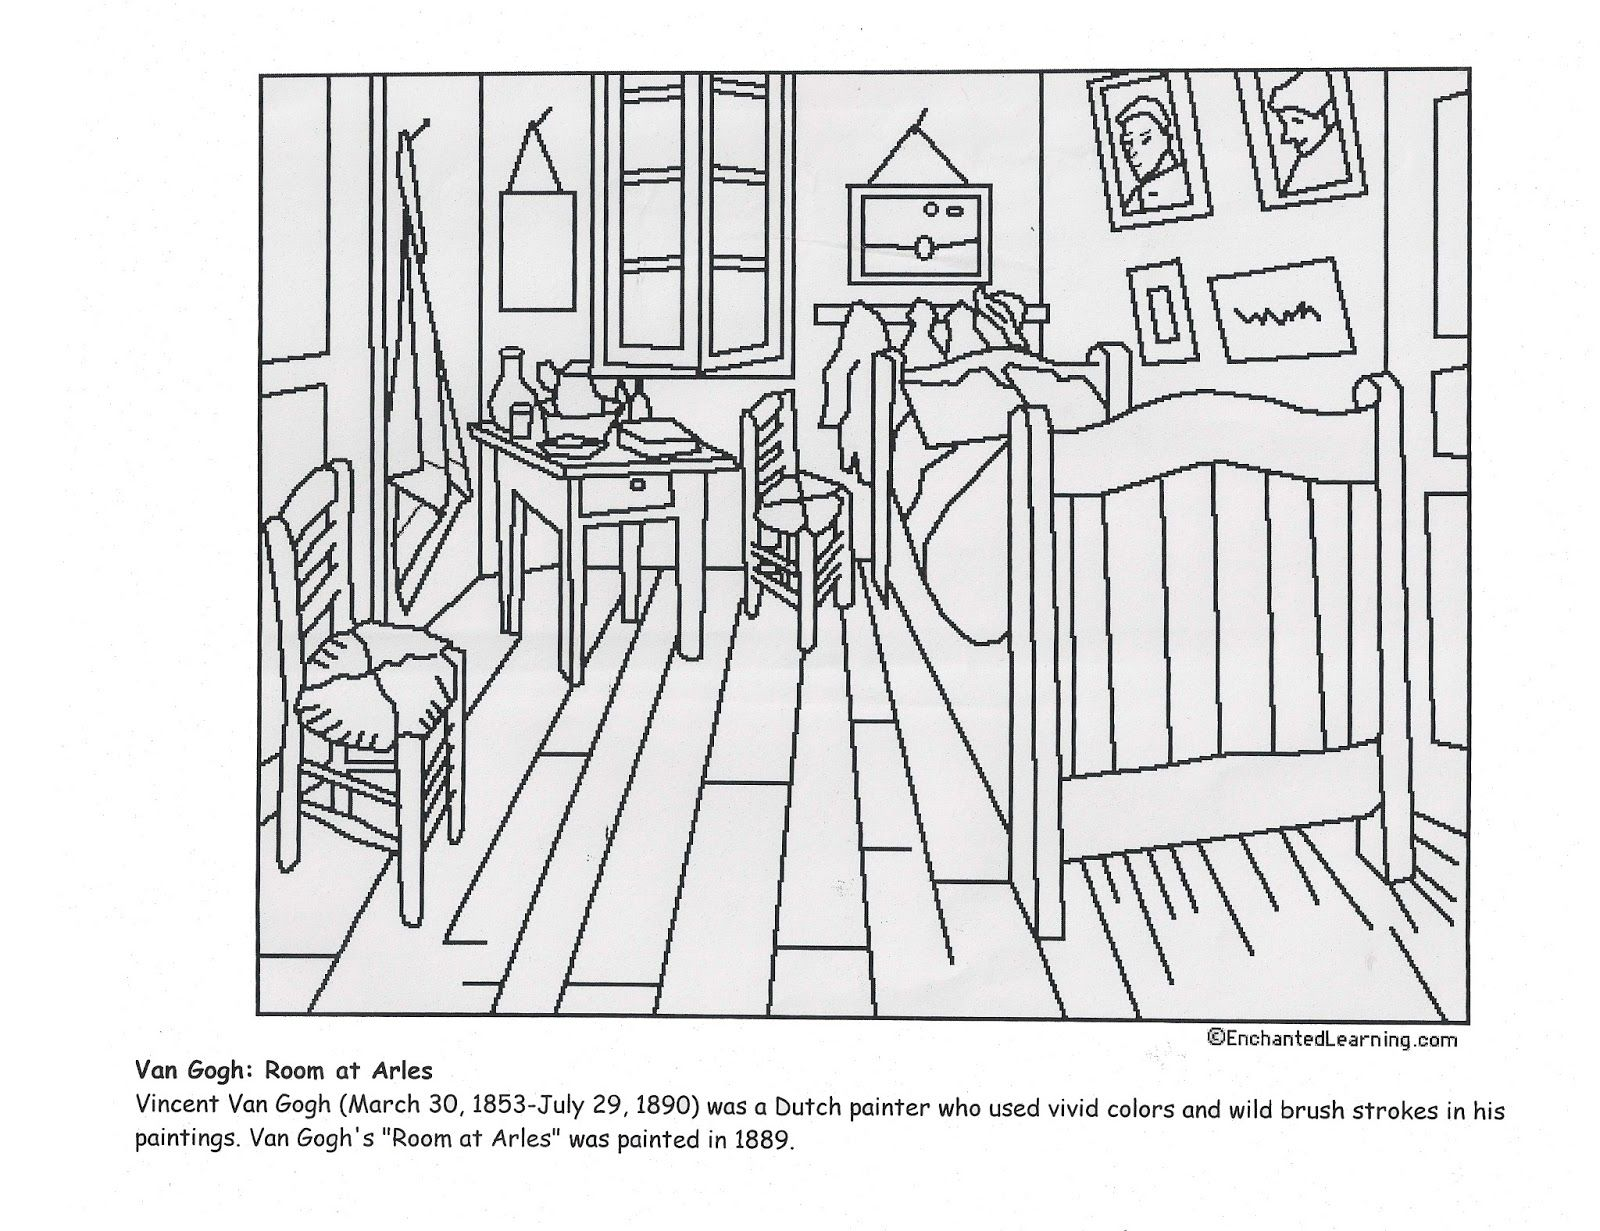 Vincent Van Gogh S Bedroom At Arles Coloring Page